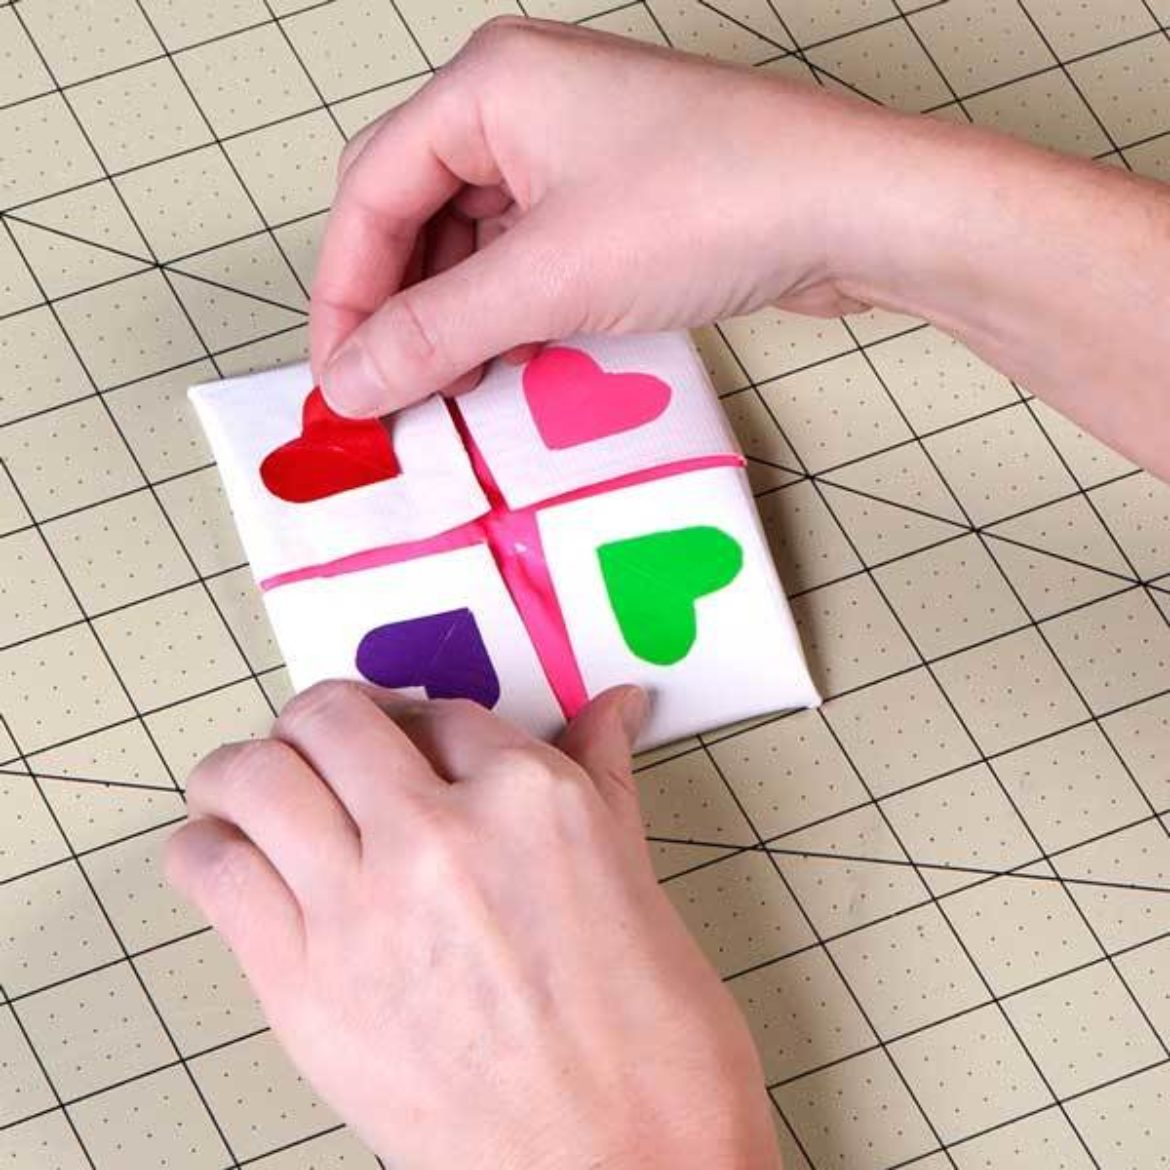 4 different colored Duck Tape heart cutouts placed on the small squares formed on the opposite side of the square